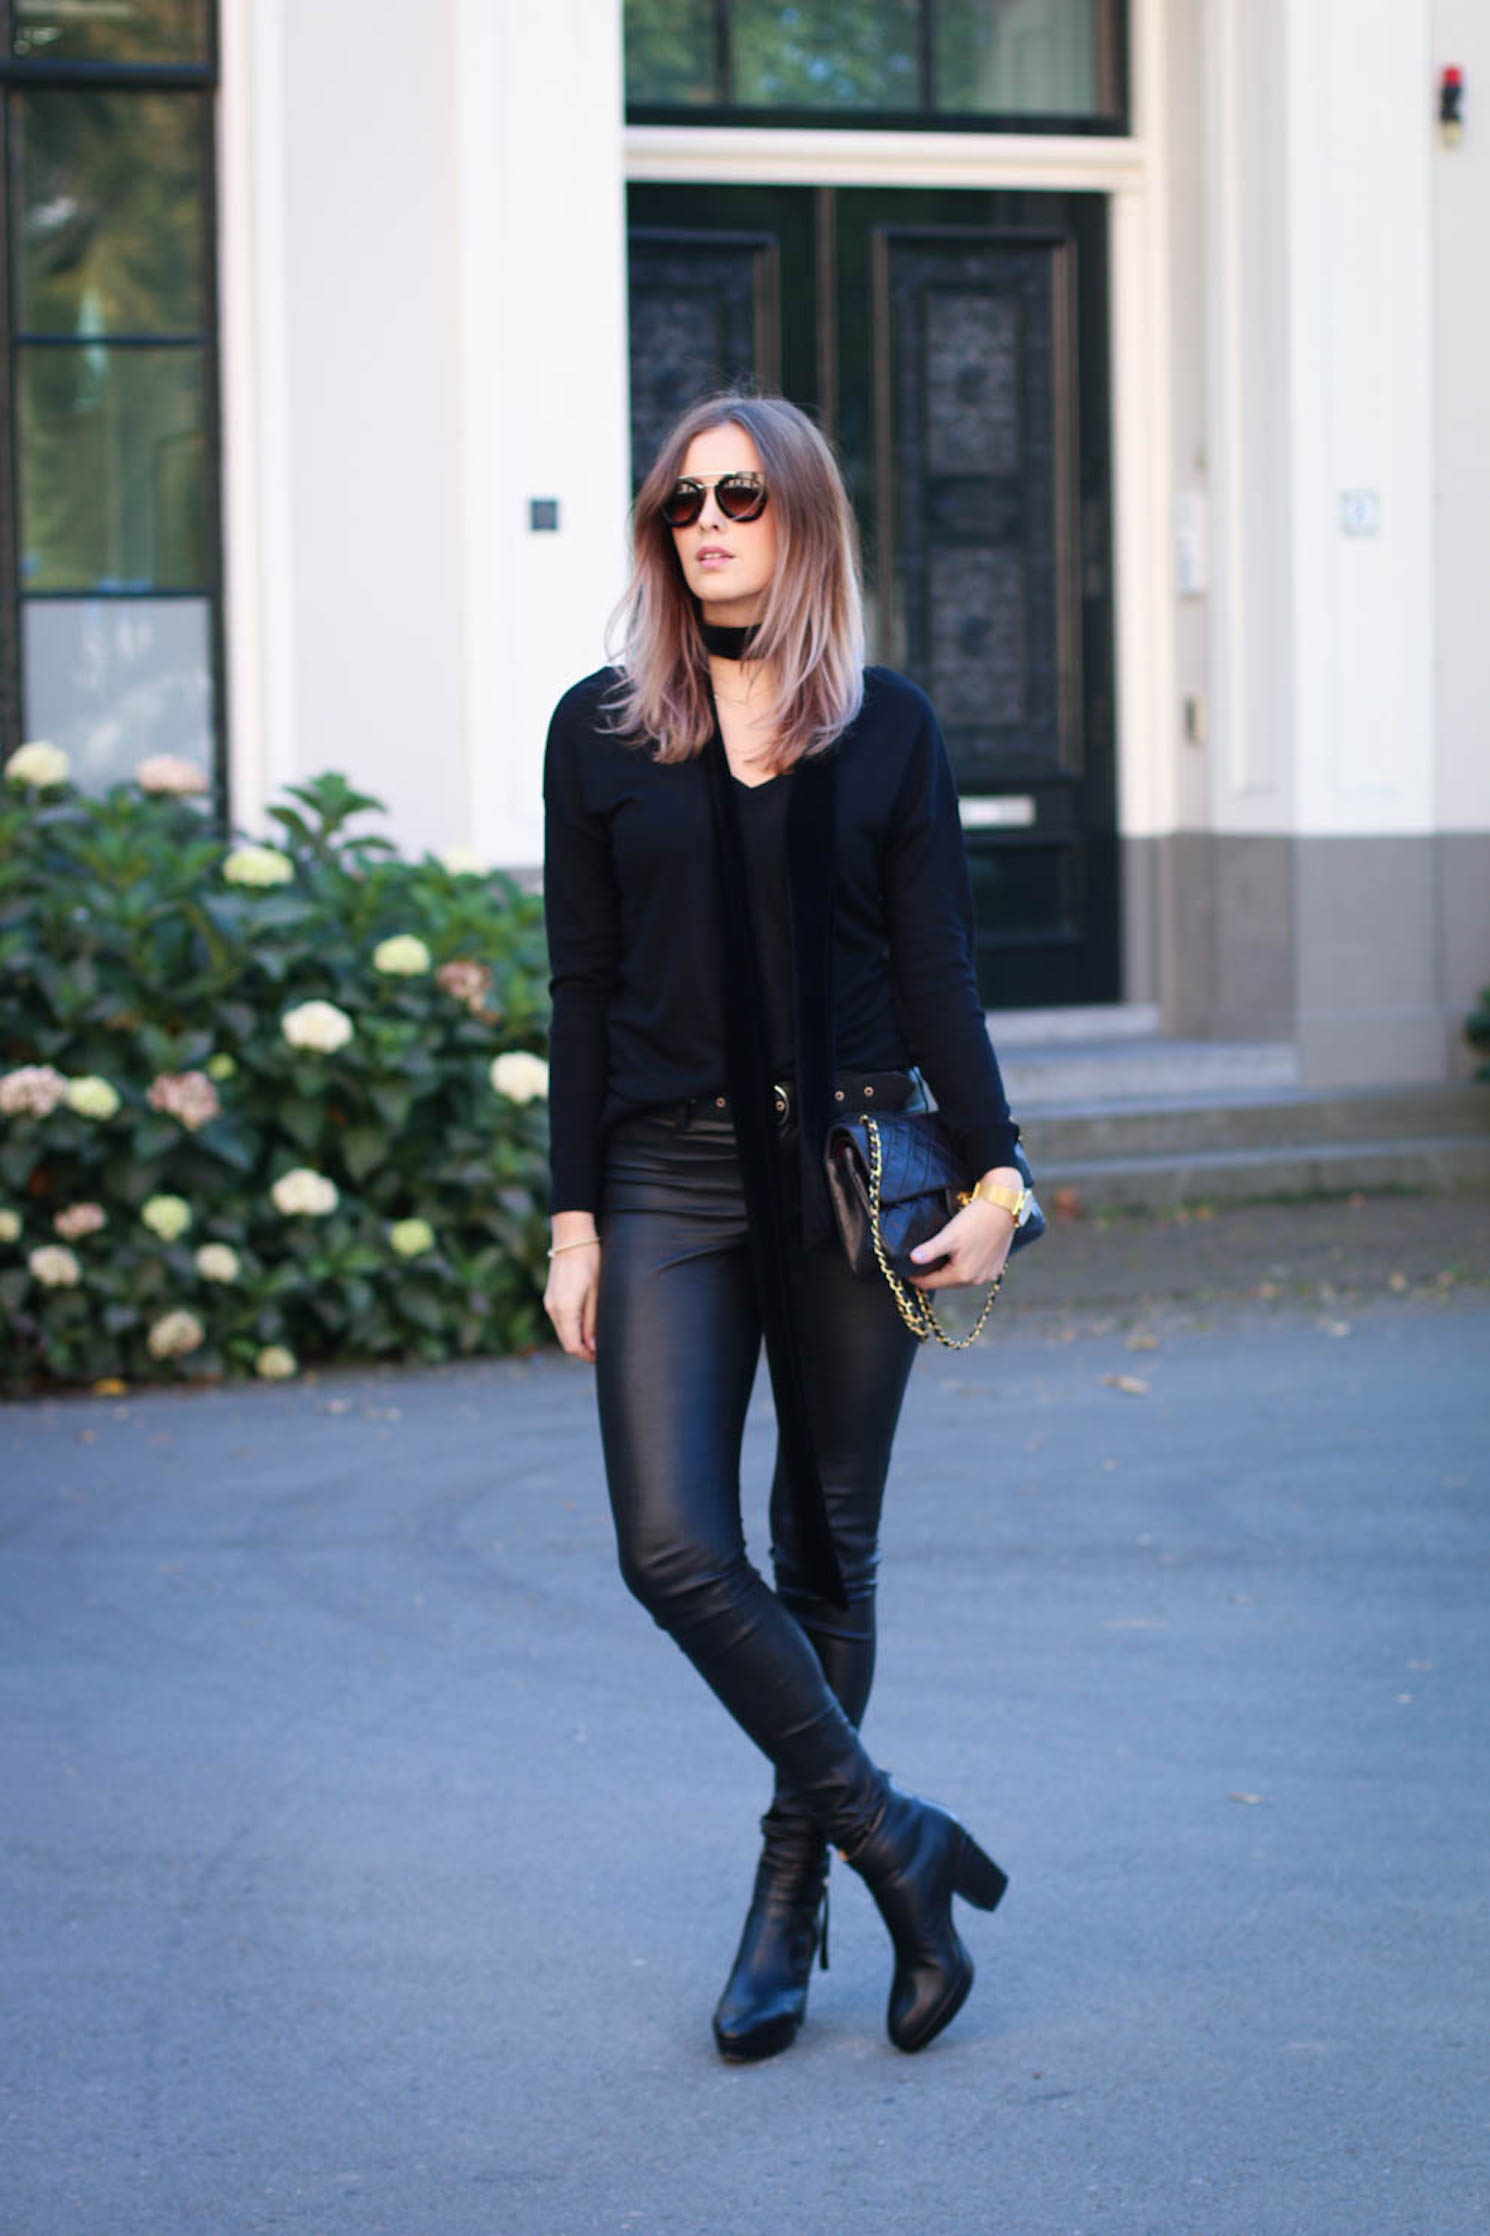 Roos-Anne van Dorsten exudes an air of mystery in this all black outfit. Top: Zara, Trousers: Set Fashion